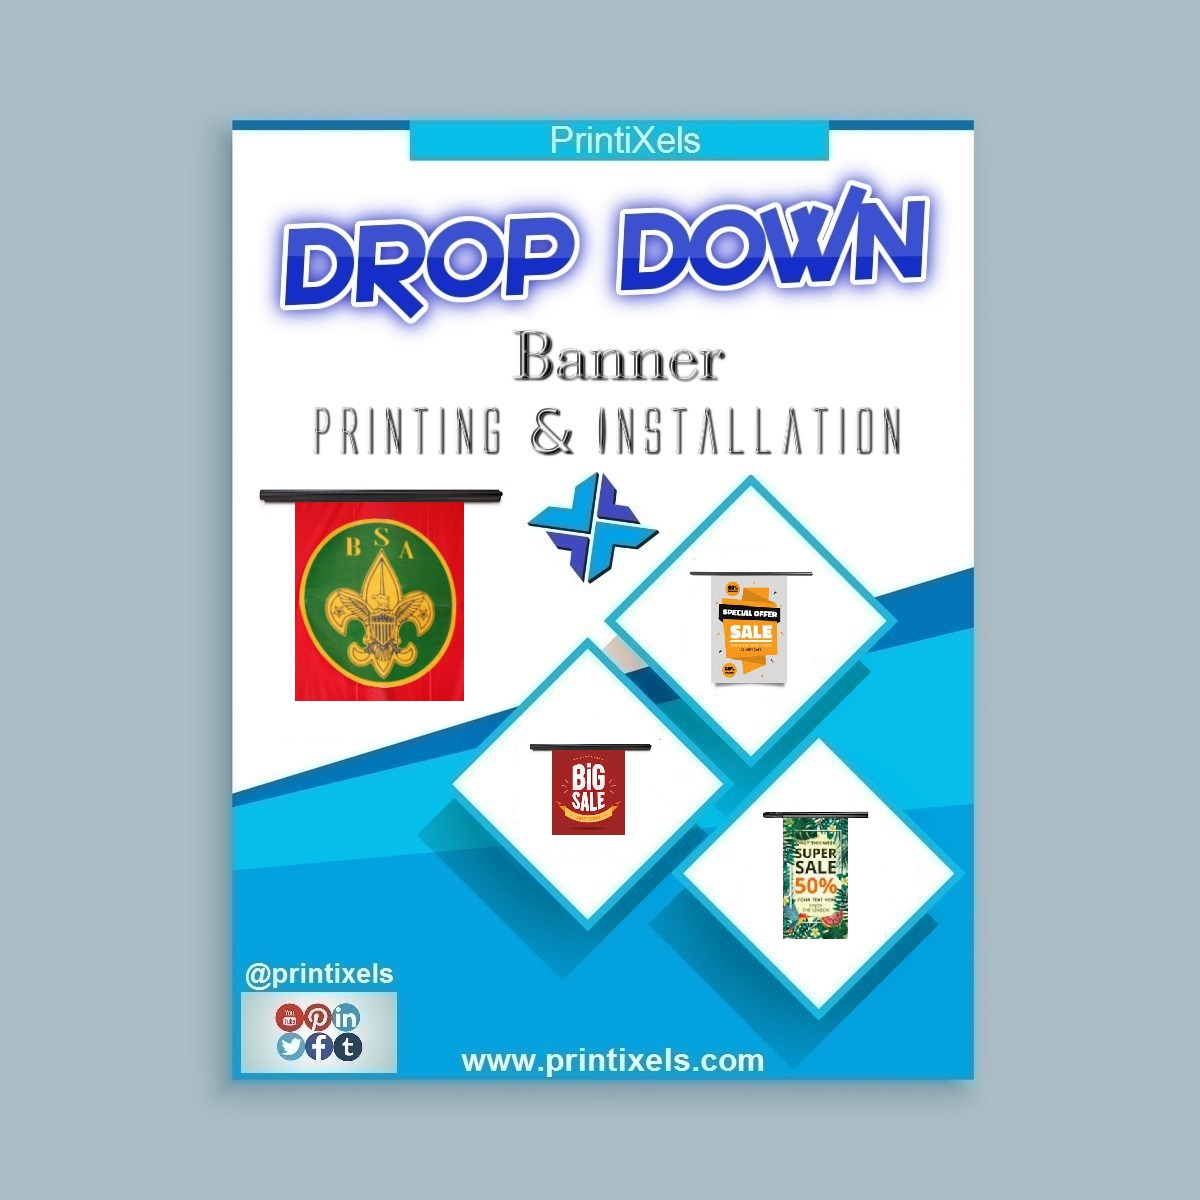 Drop Down Banner Printing & Installation